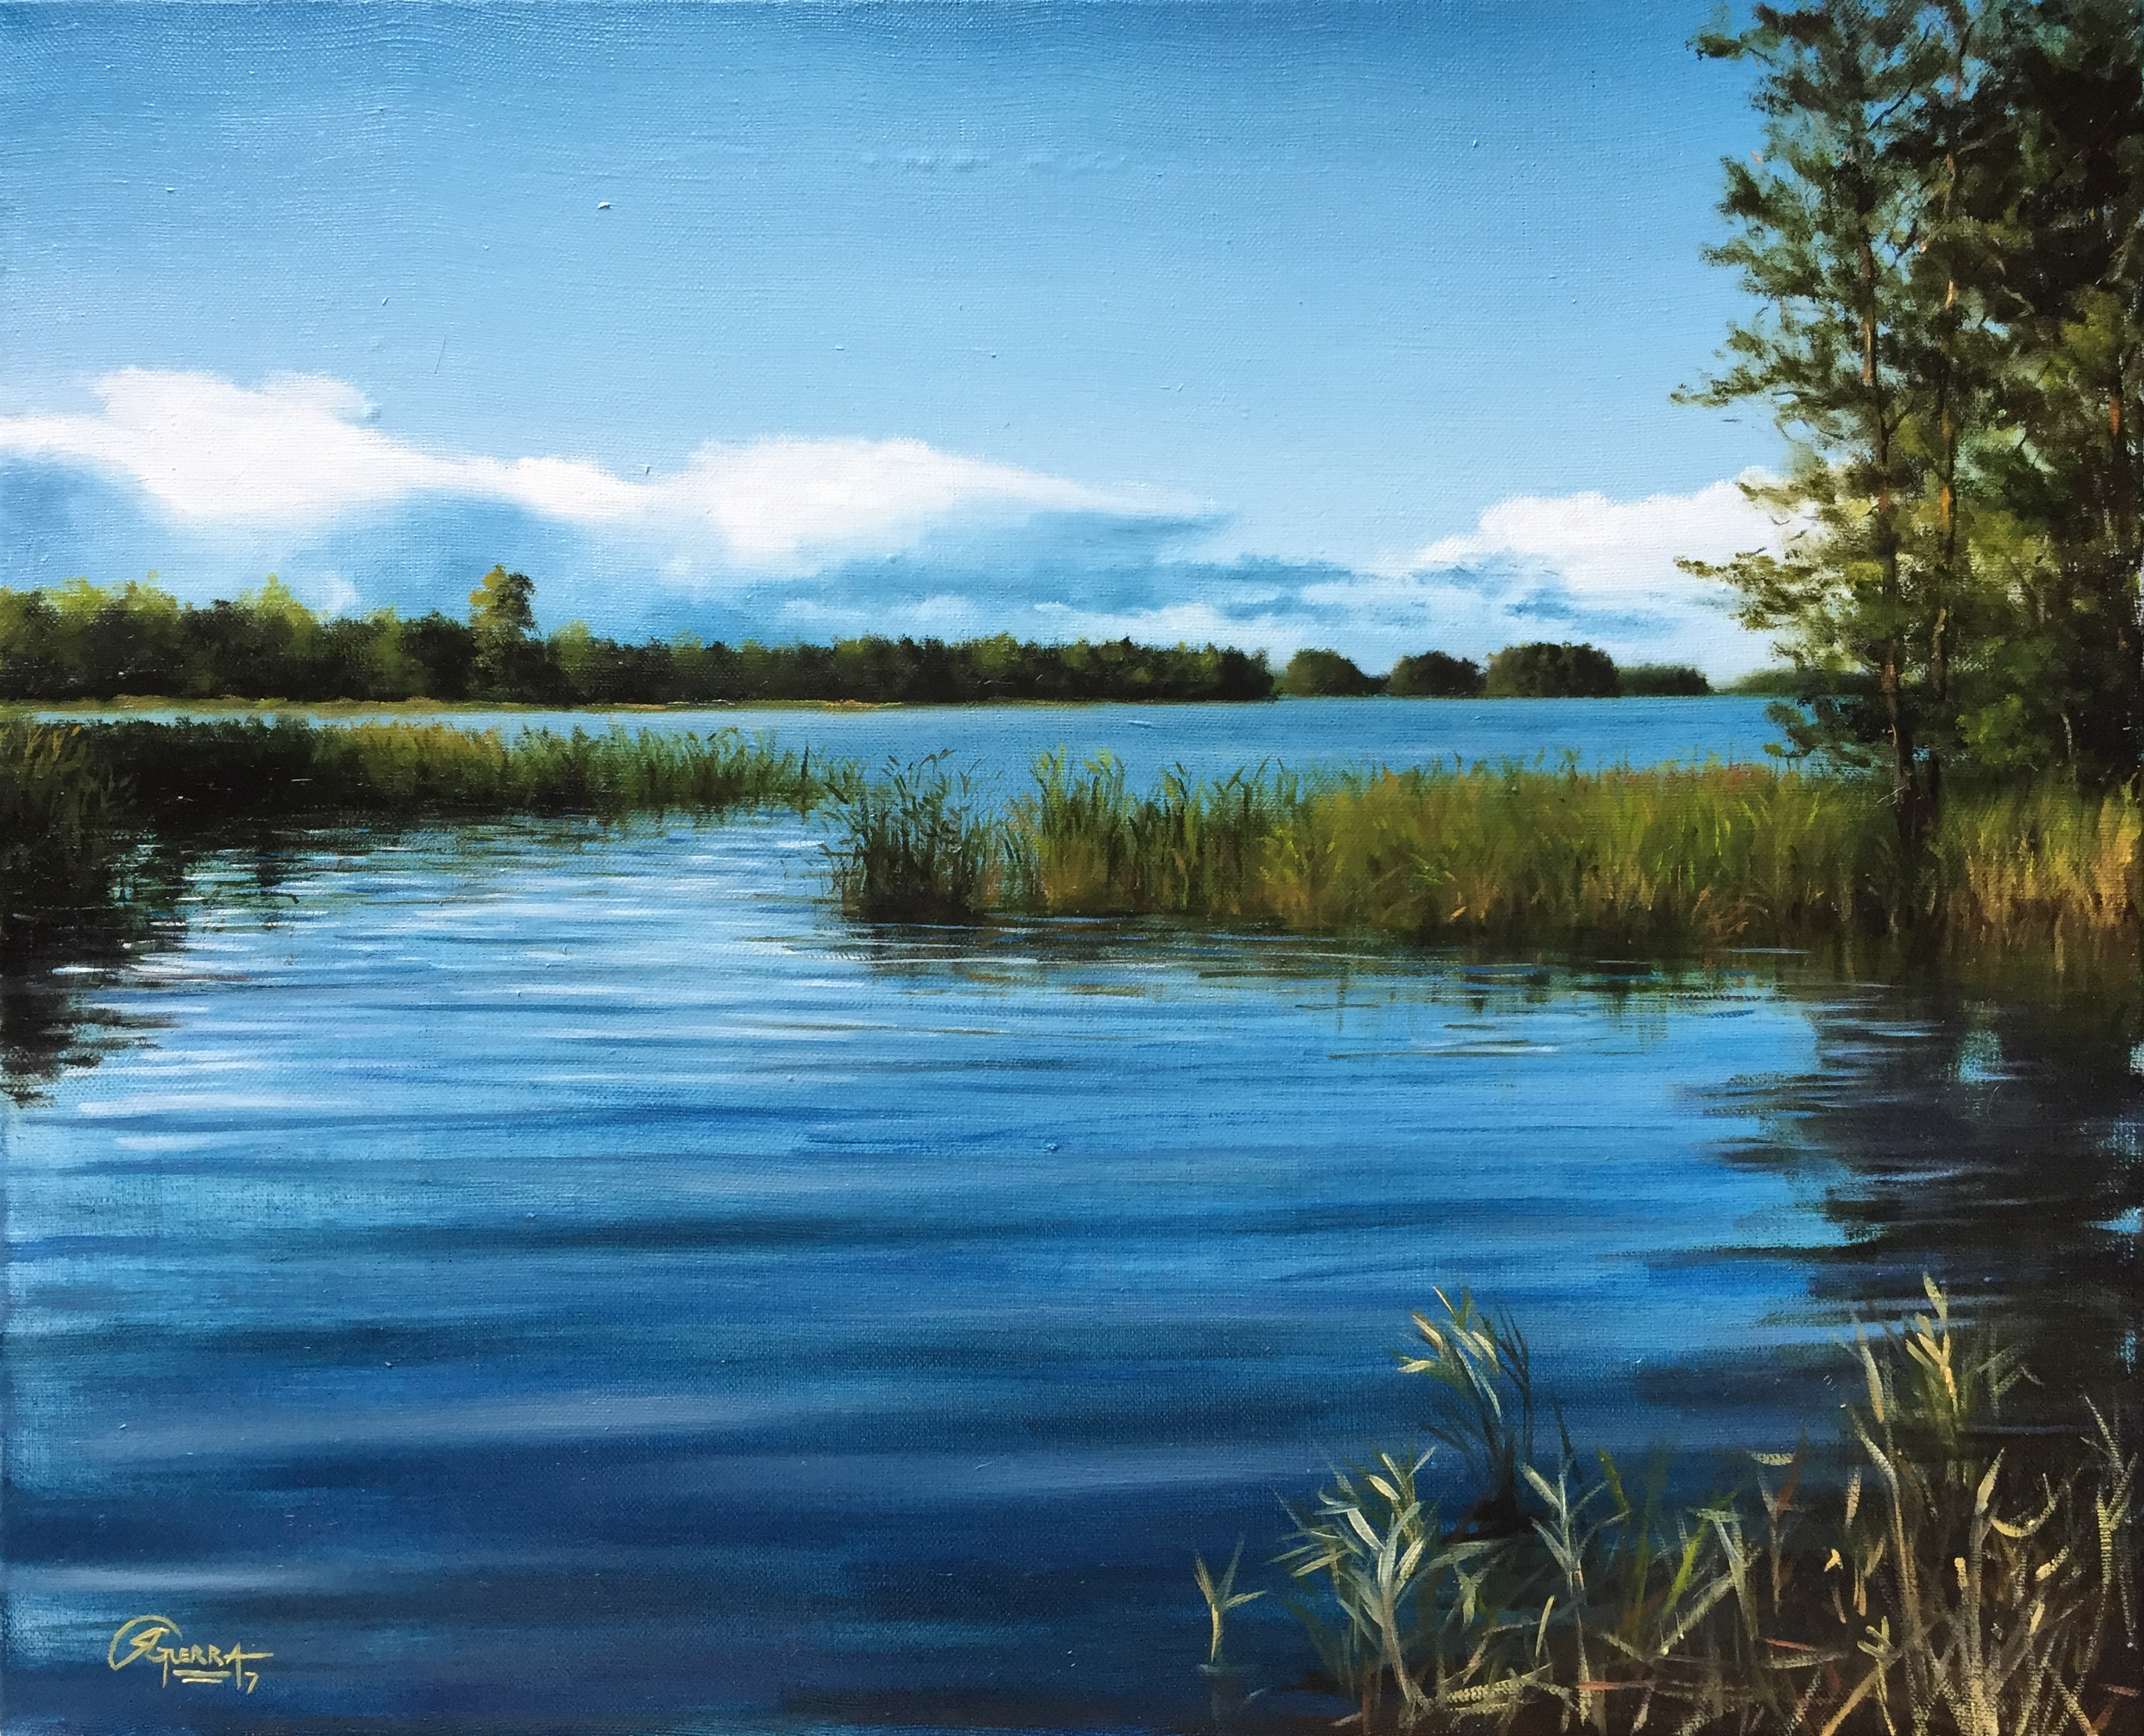 A Lake in Finland in Summer (August), Rafael Guerra Painting